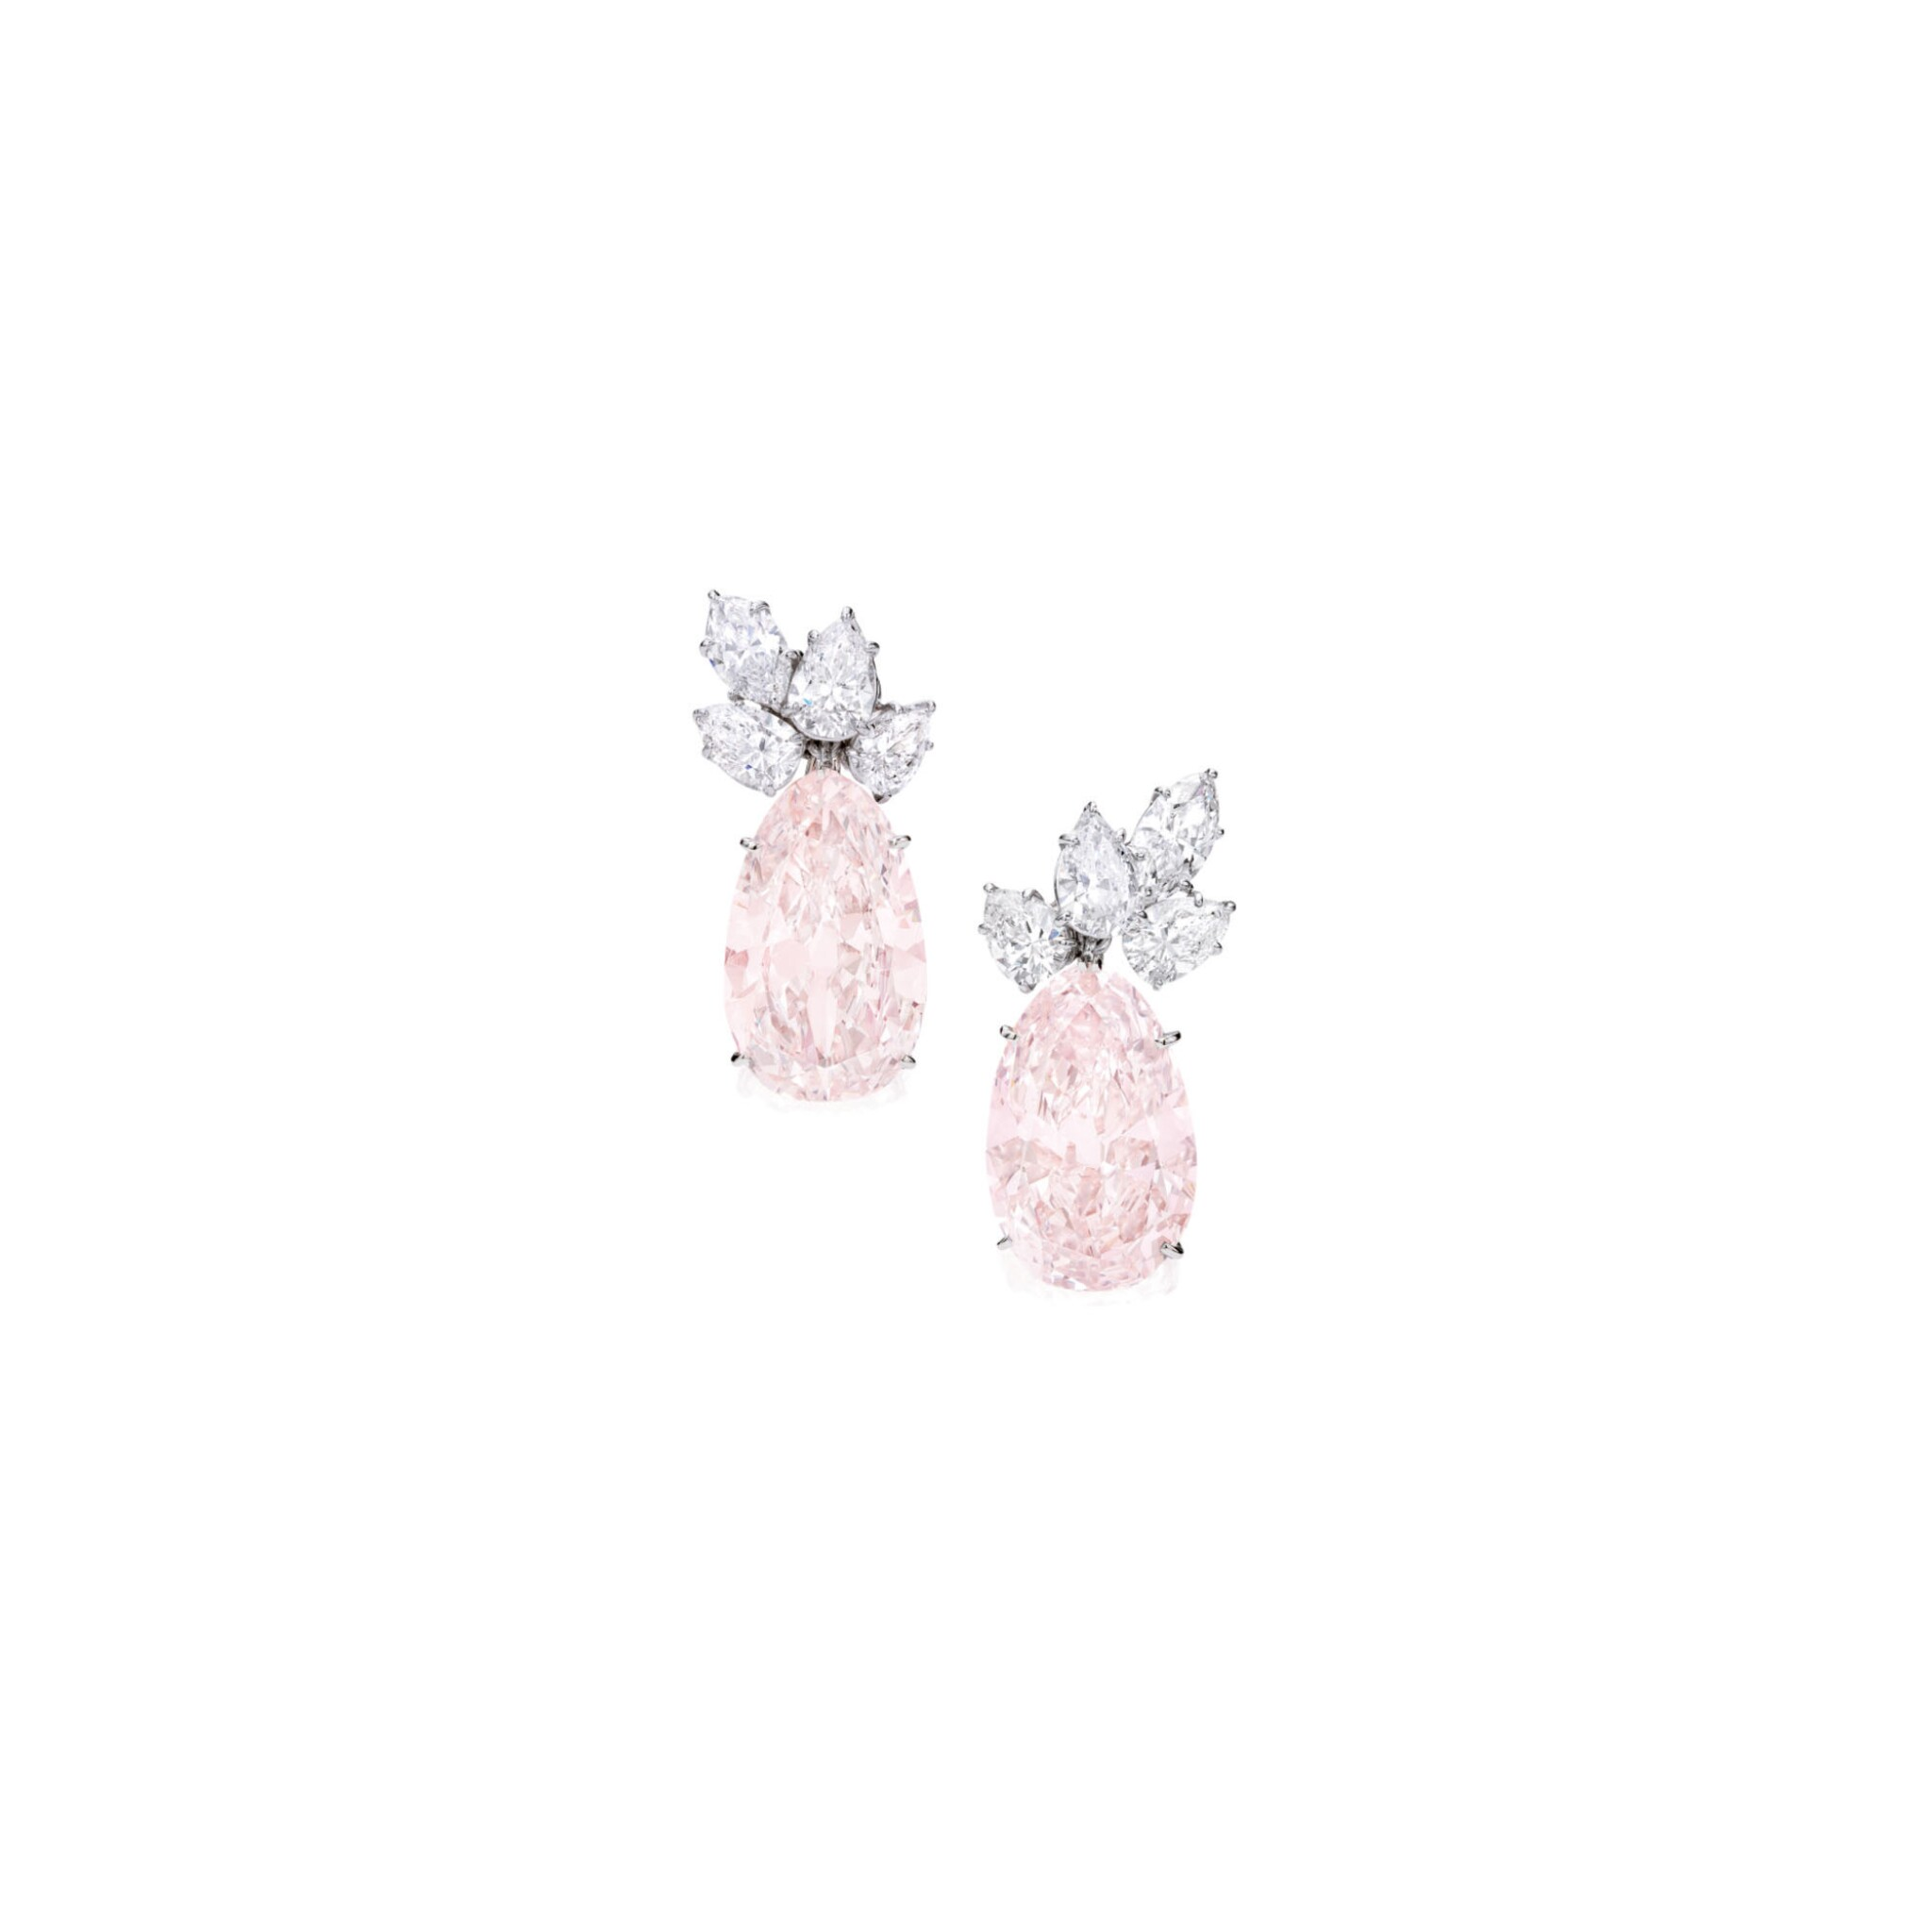 View 1 of Lot 481. PAIR OF FANCY LIGHT BROWN-PINK AND DIAMOND EARCLIPS, HARRY WINSTON | 淡彩棕粉紅色鑽石配鑽石耳環一對,海瑞溫斯頓.